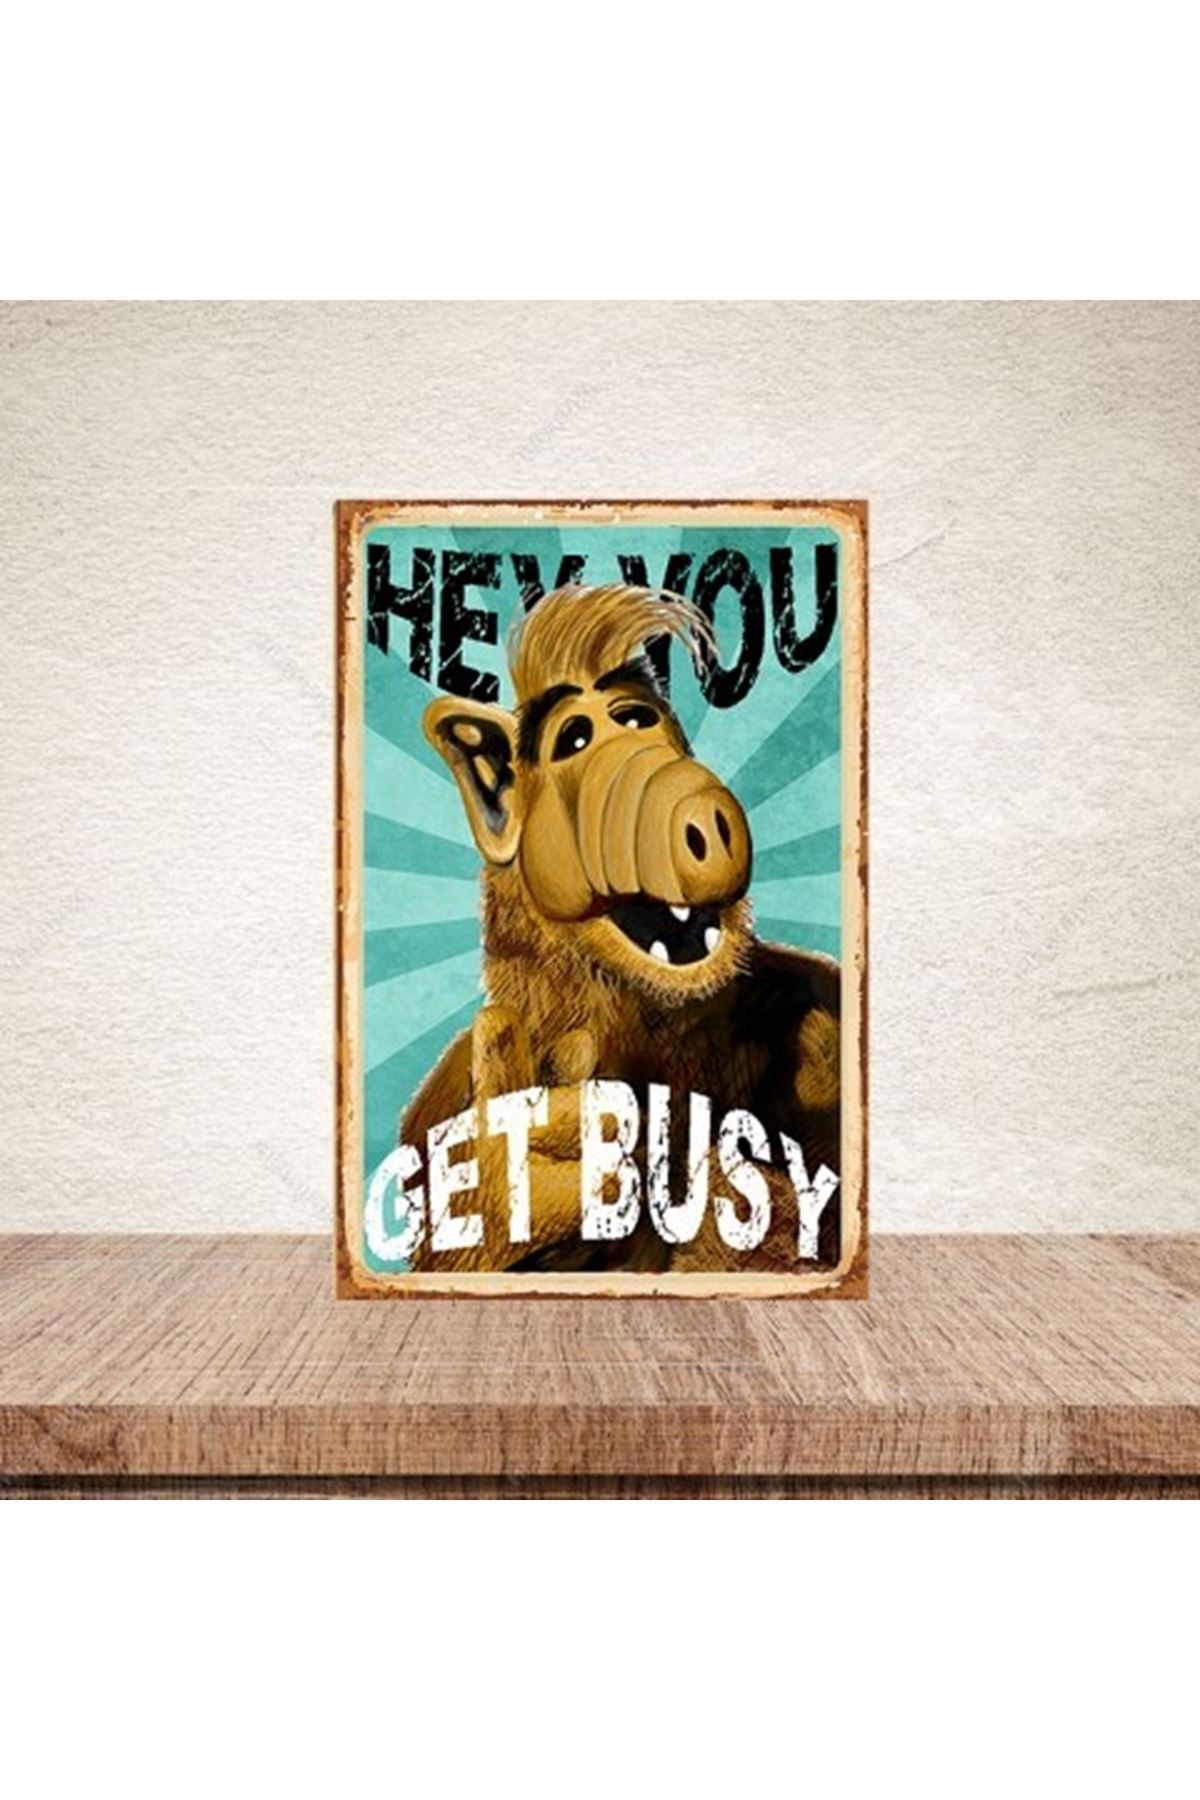 HEY YOU GET BUSY   - AHŞAP POSTER